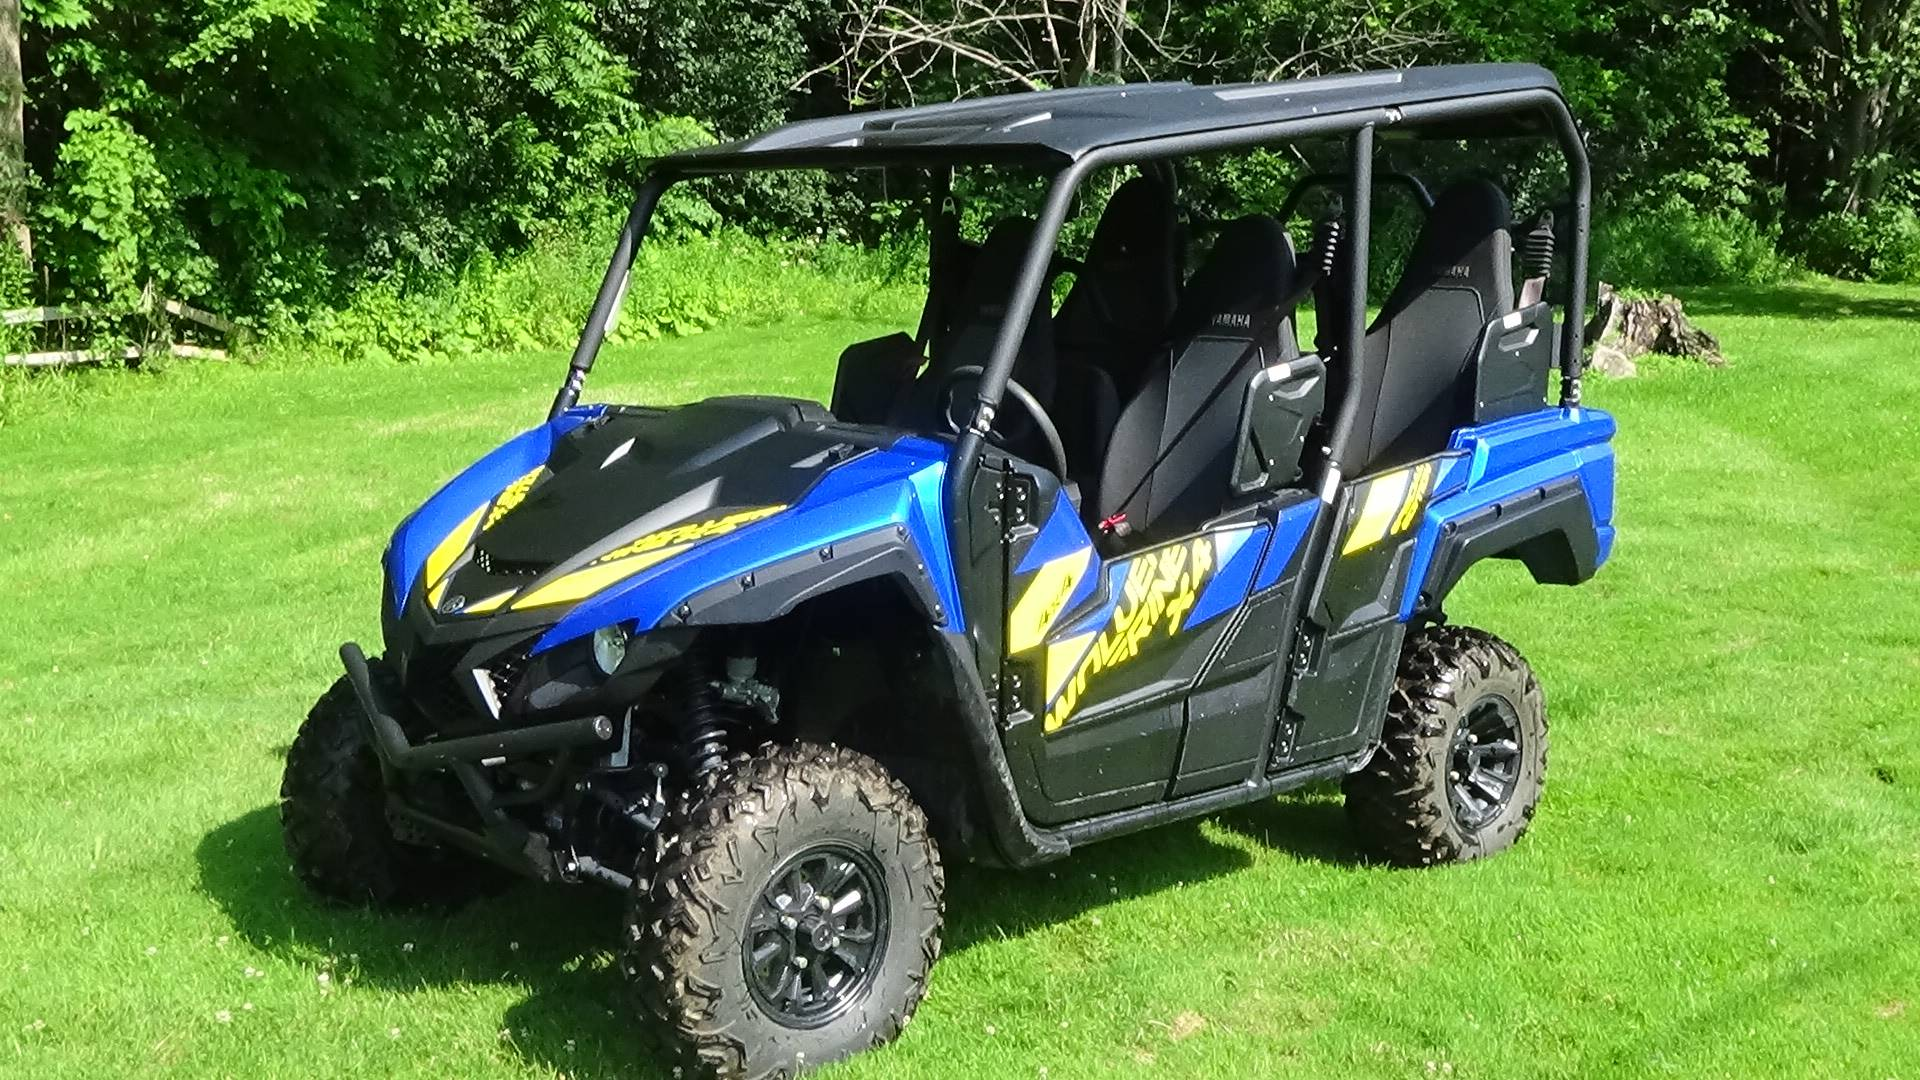 New 2019 Yamaha Wolverine X4 SE Utility Vehicles in Adams